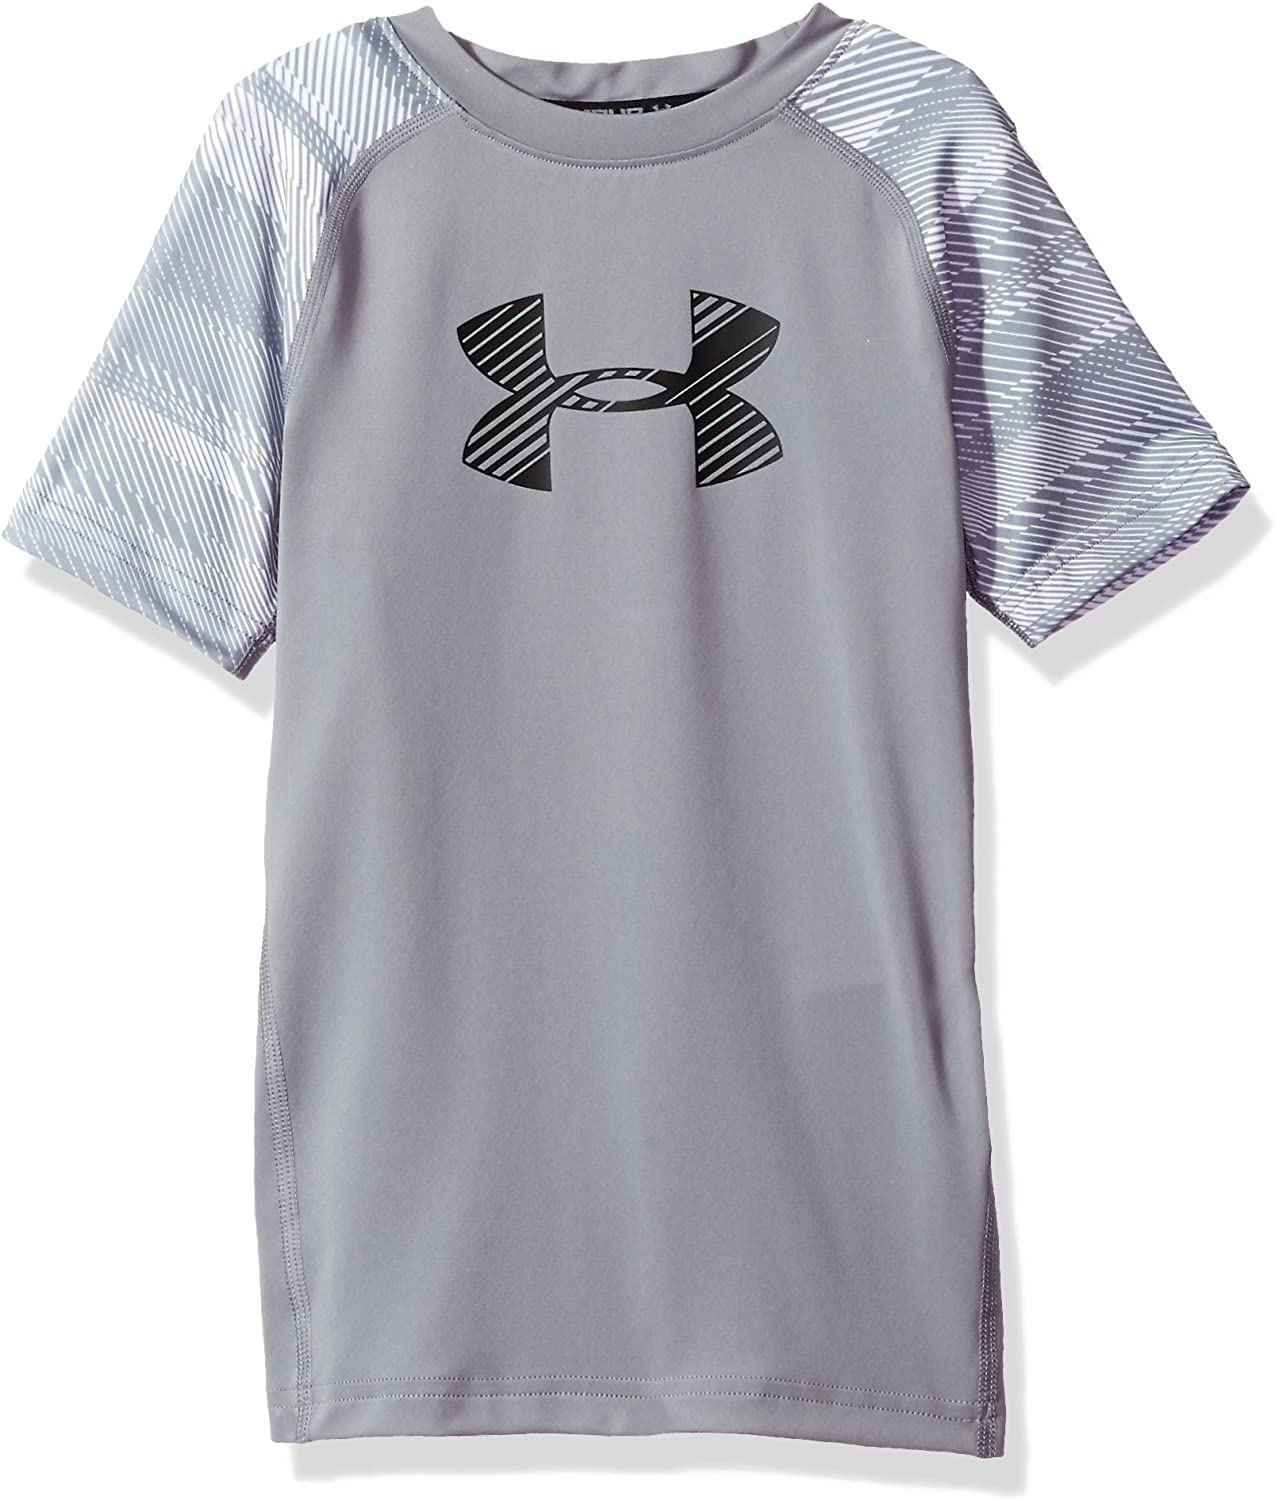 Under Armour Boys/' Train to Game Fitness Top Short Sleeve Shirt Black Small